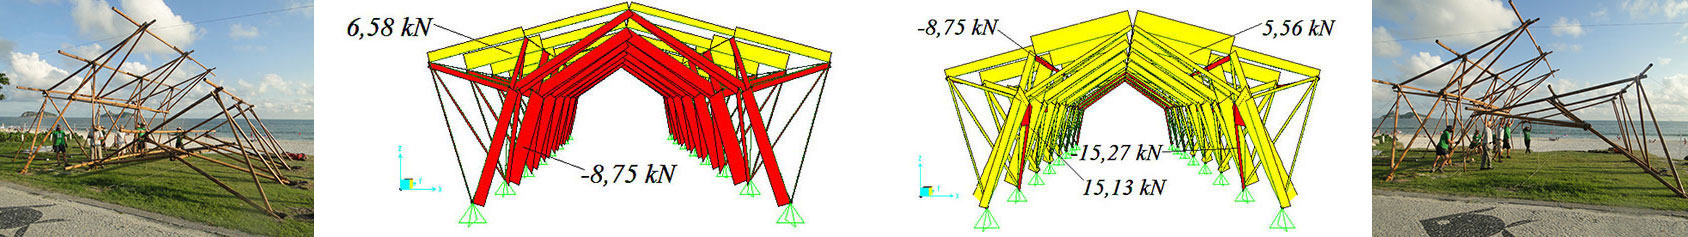 1-design-and-analysis-of-a-bamboo-roof-structure-Journal-of-International-Association-for-Shell-and-Spatial-Structures.jpg